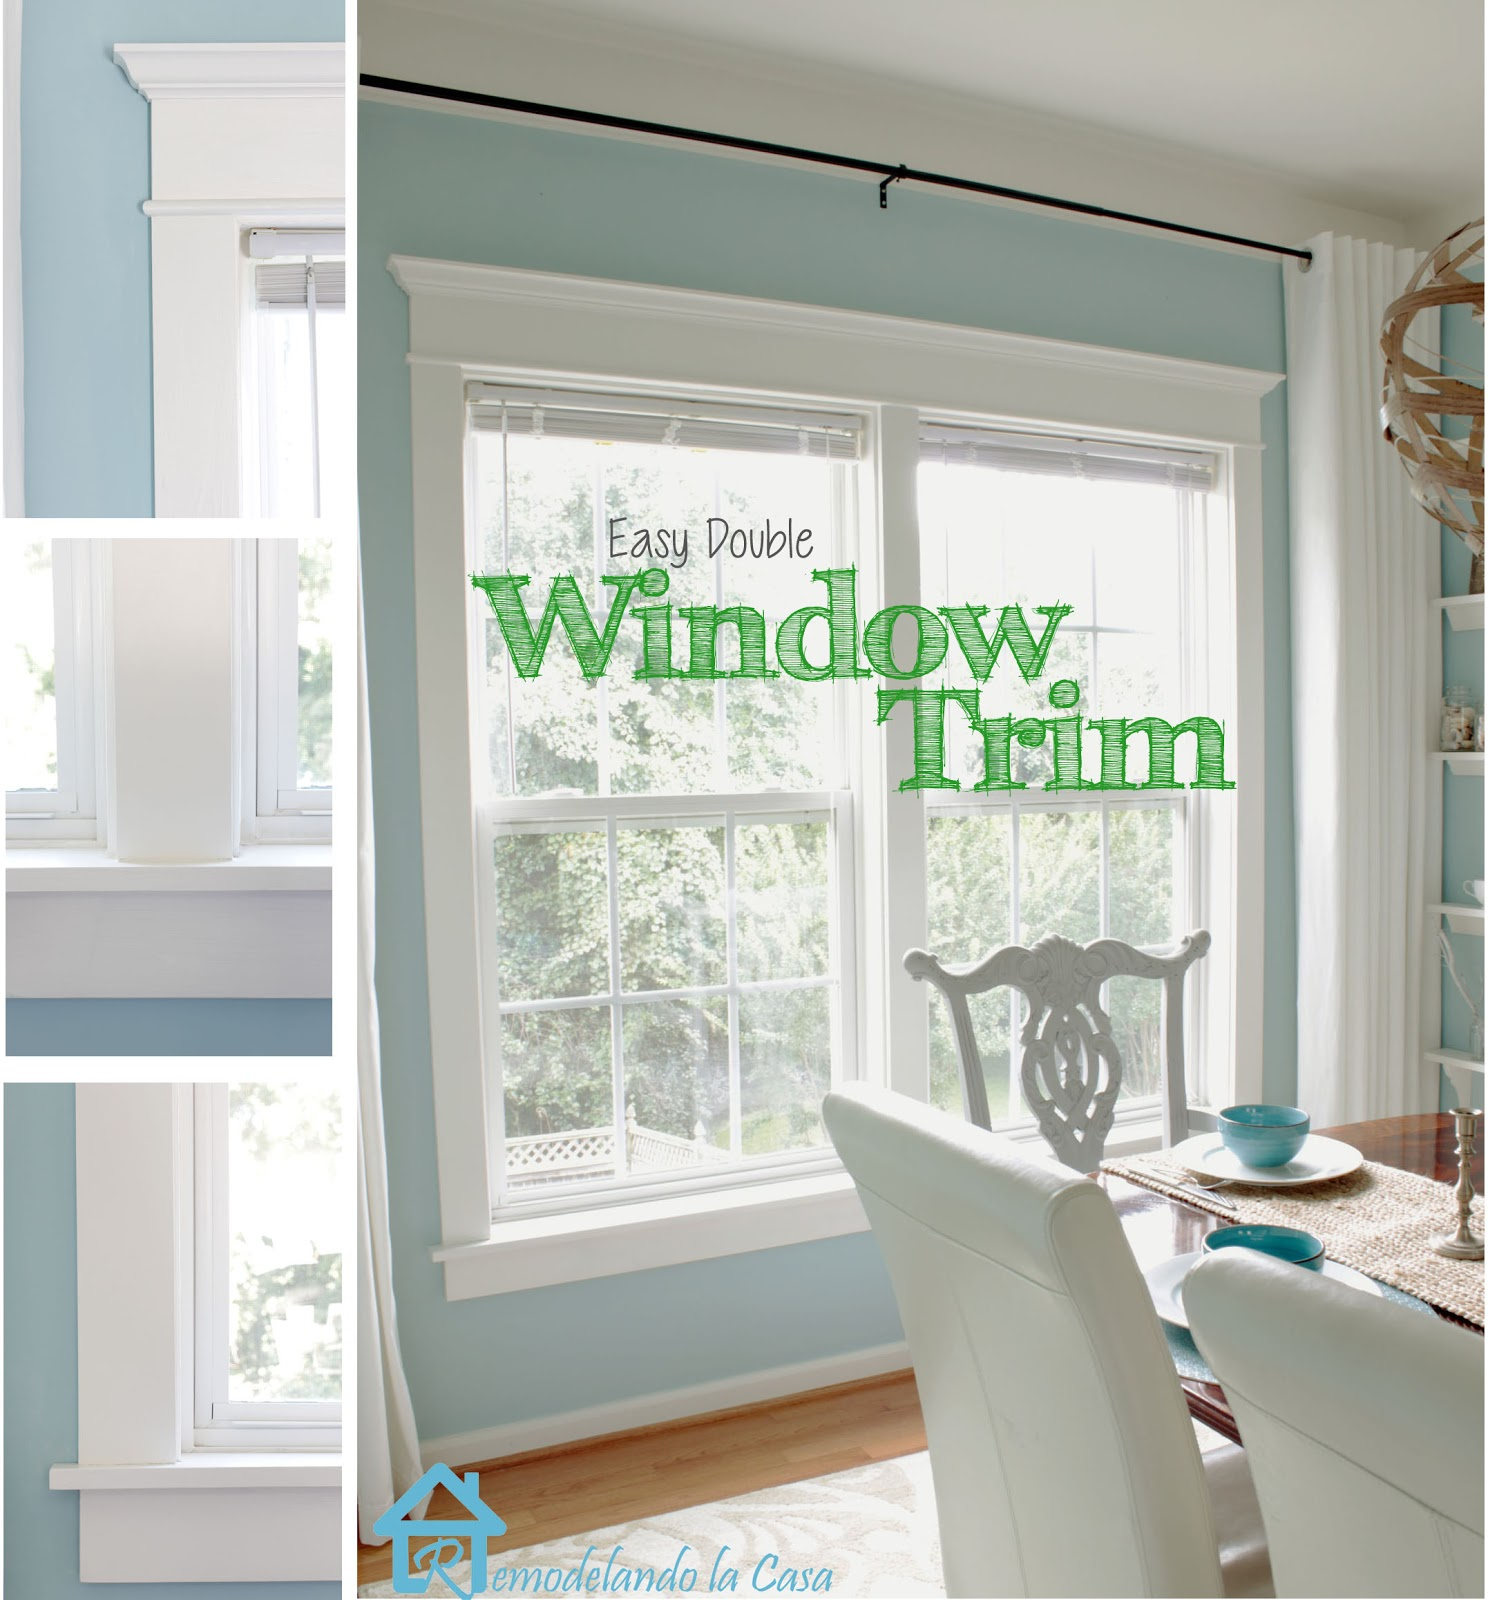 How to install trim on a double window remodelando la casa for How to replace a window